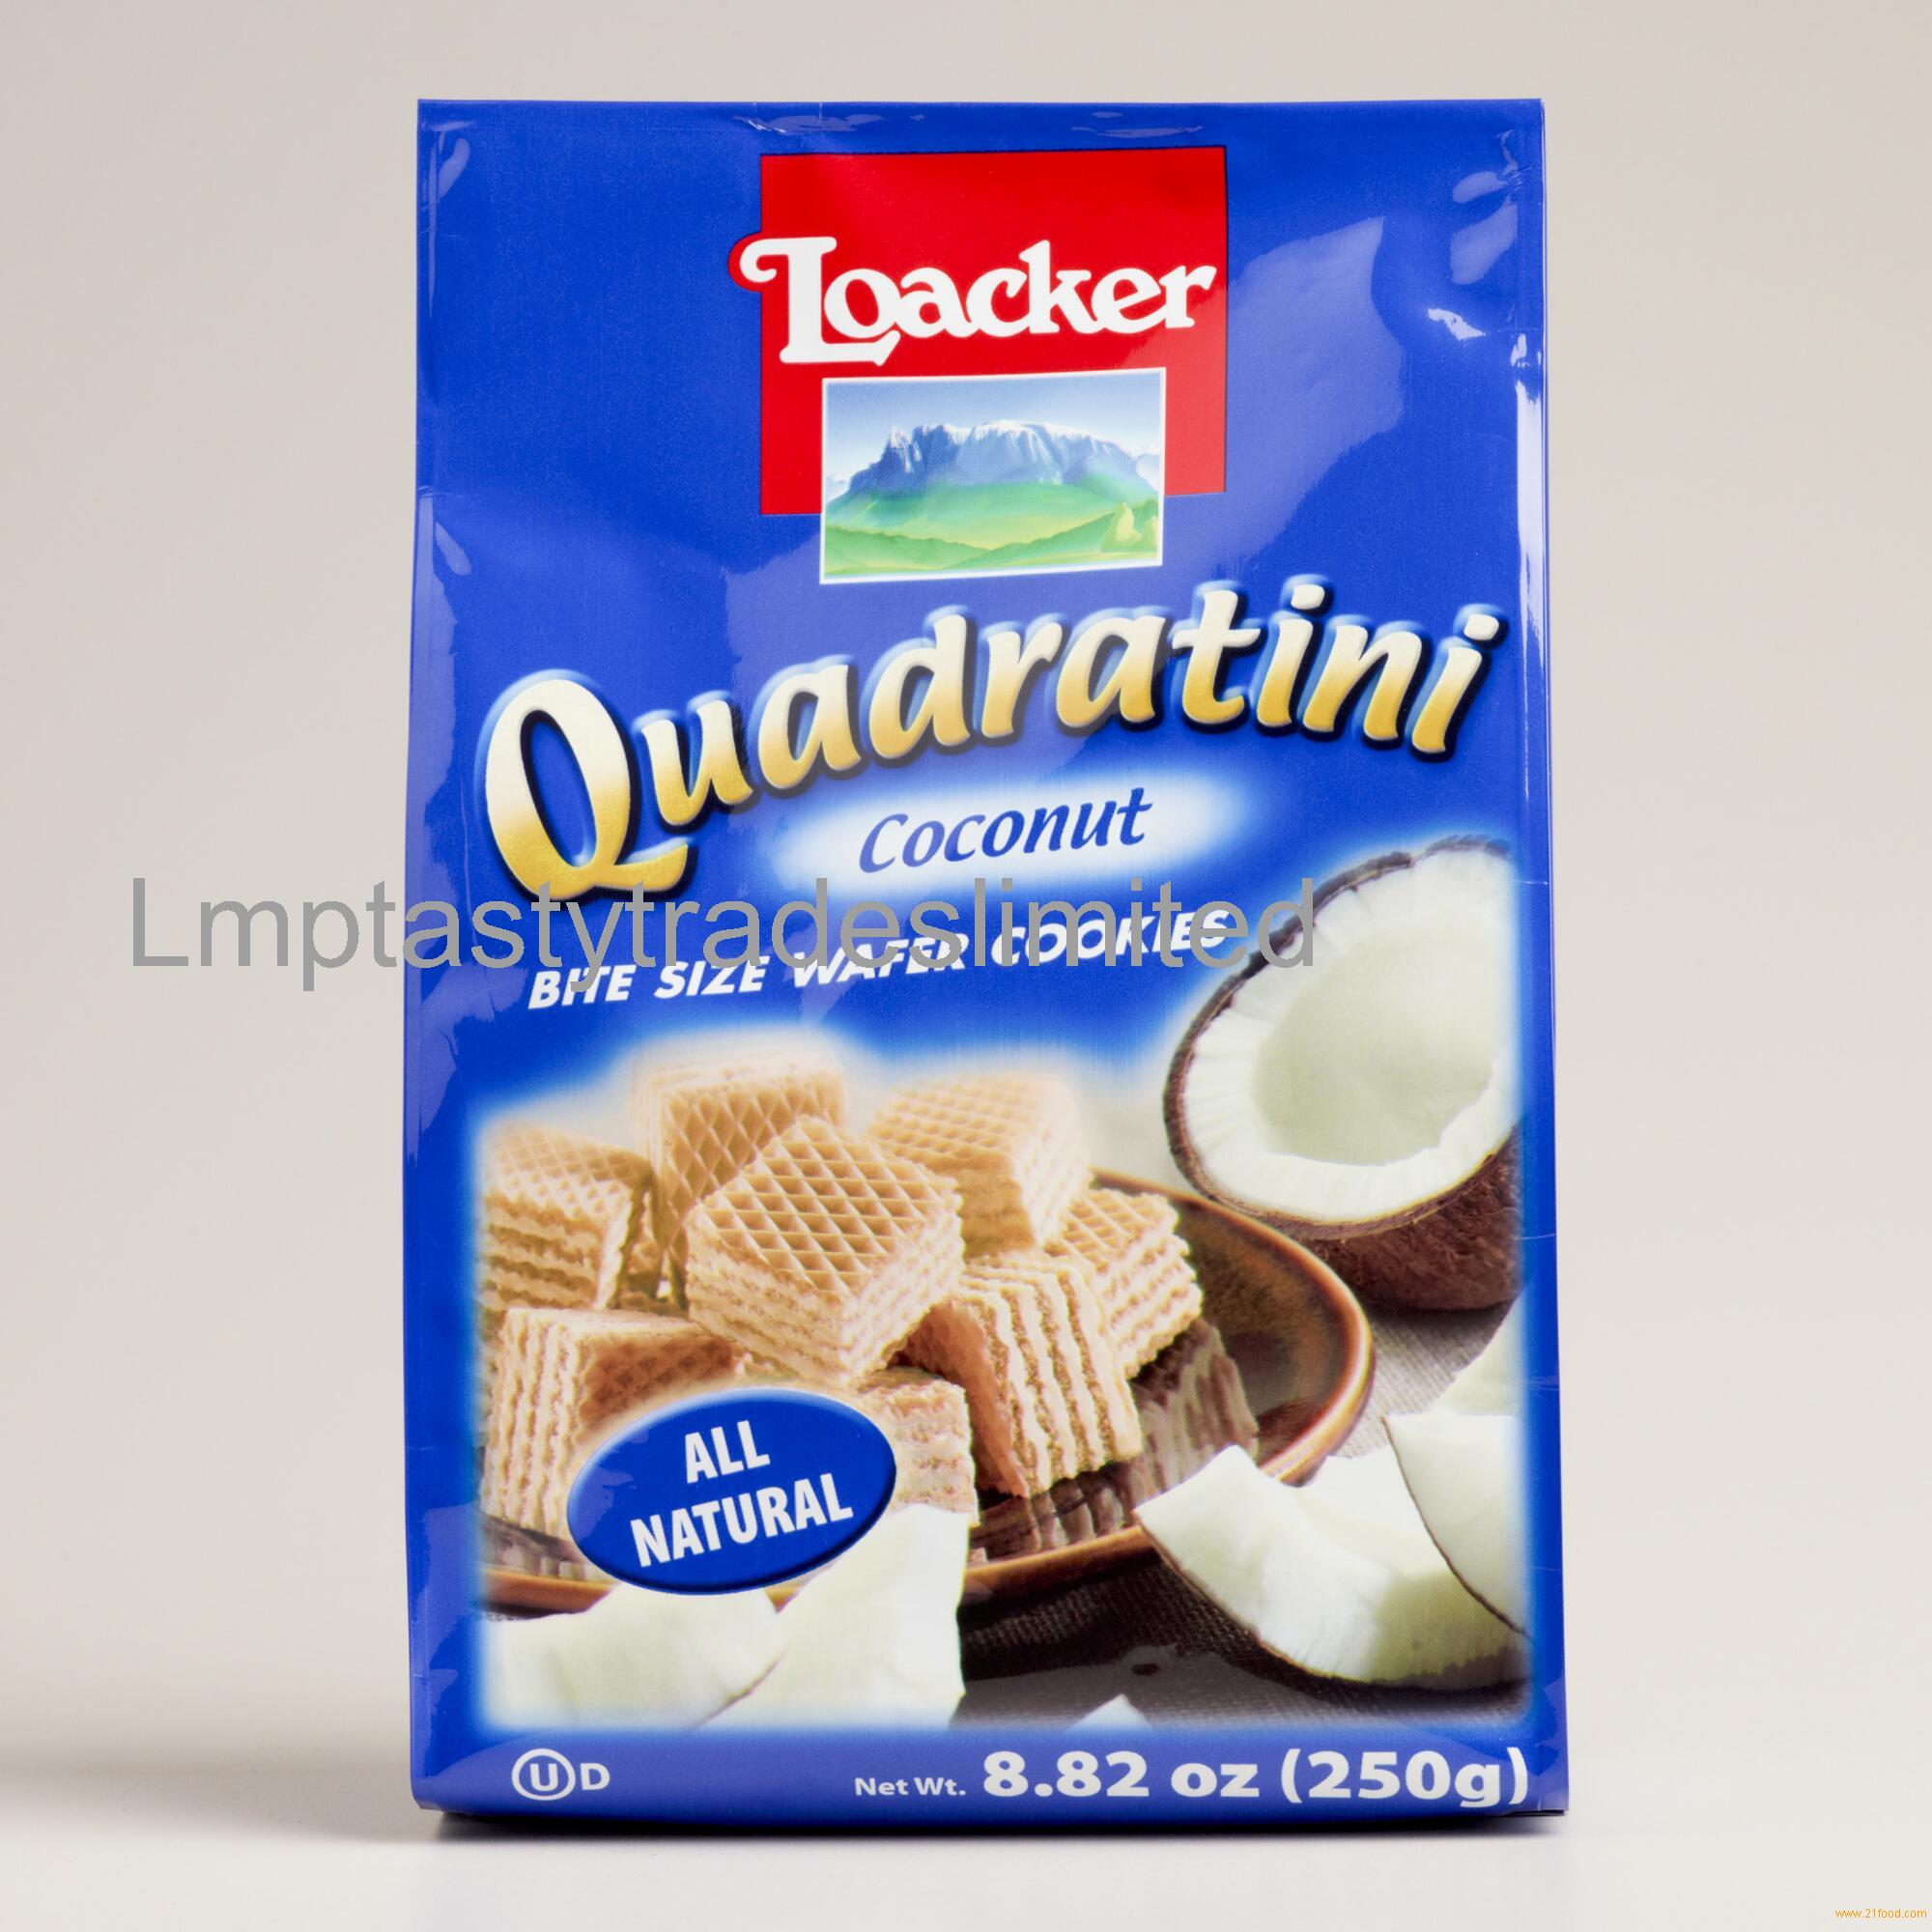 Loacker Quadratini Wafers 125gr Bags